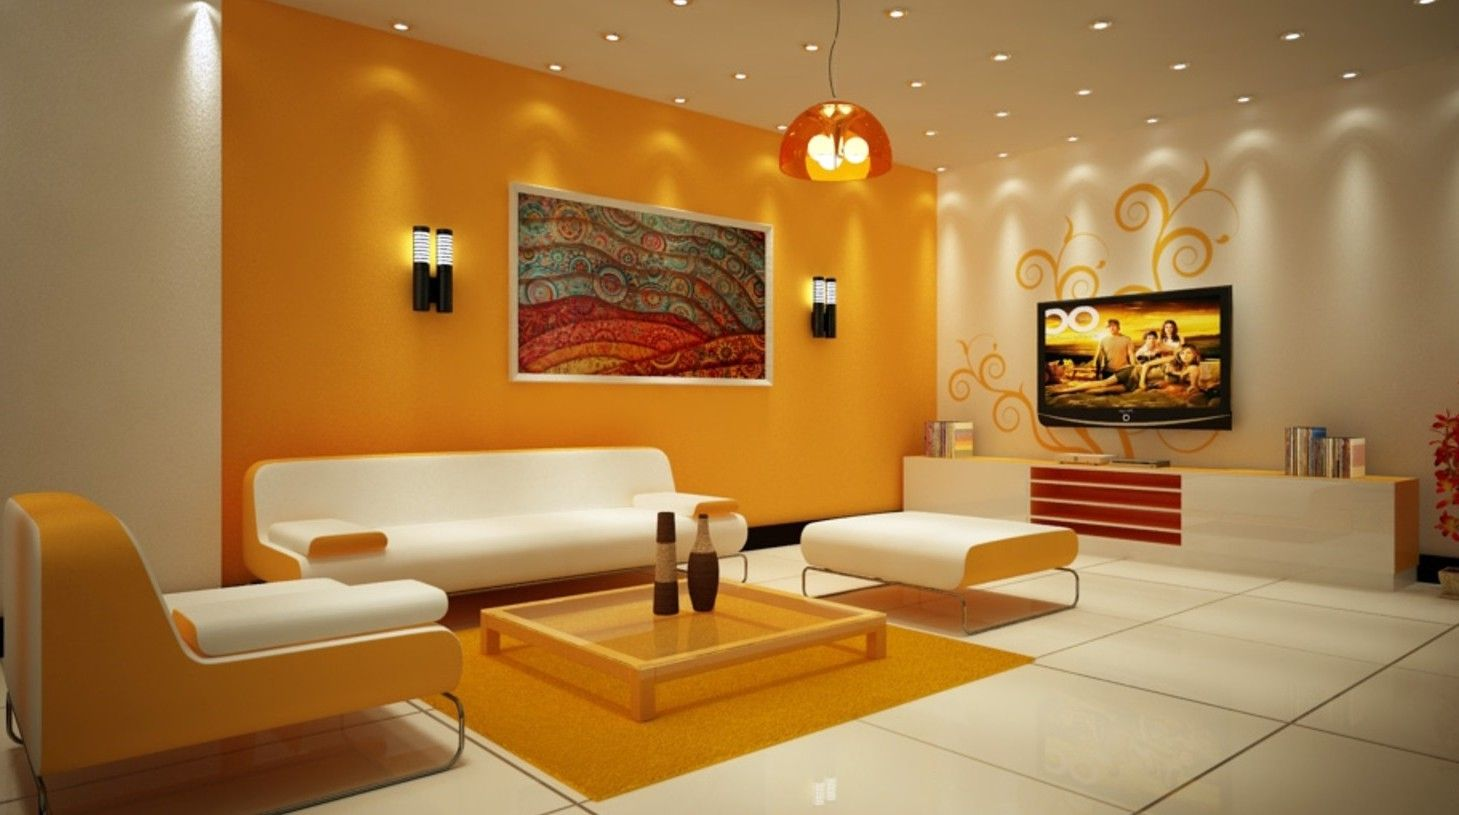 Creative Photo Of Modern Color Combination For Living Room Interior Design Ideas Home Decorating Inspiration Moercar Living Room Wall Color Living Room Orange Room Color Combination #sample #of #living #room #designs